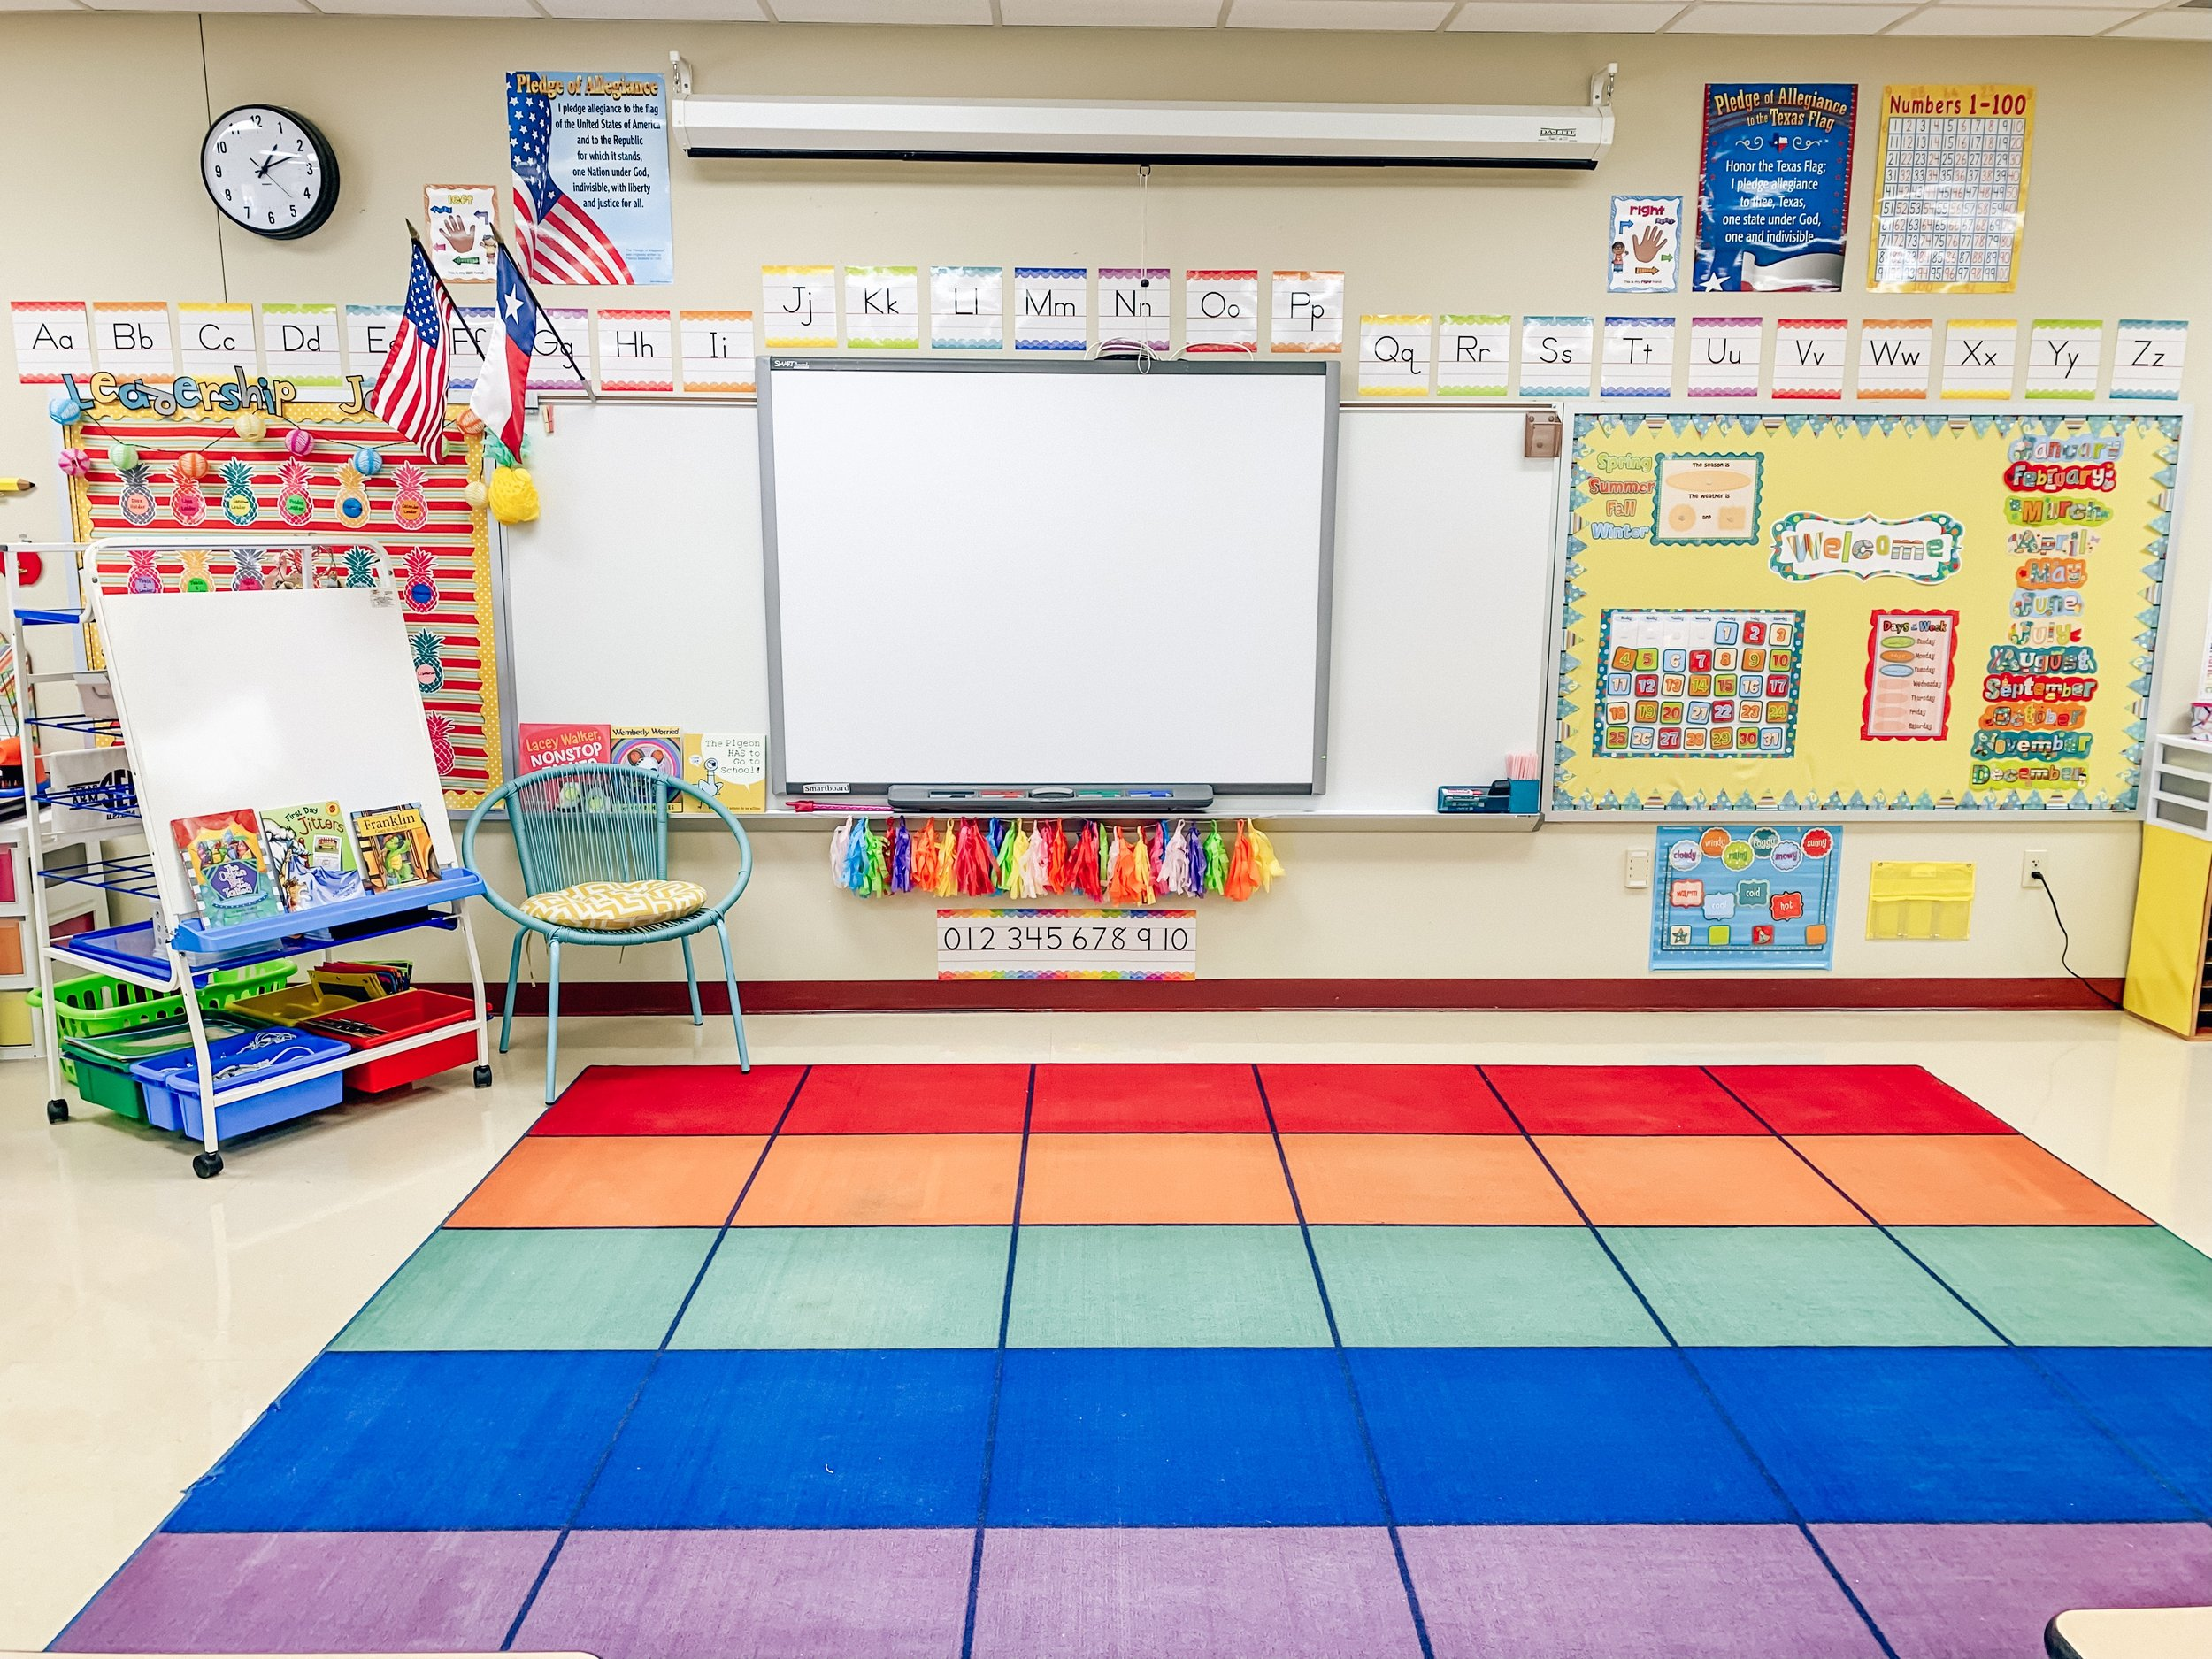 This might be my favorite view of the whole room. This carpet will soon be a very important place for learning together!